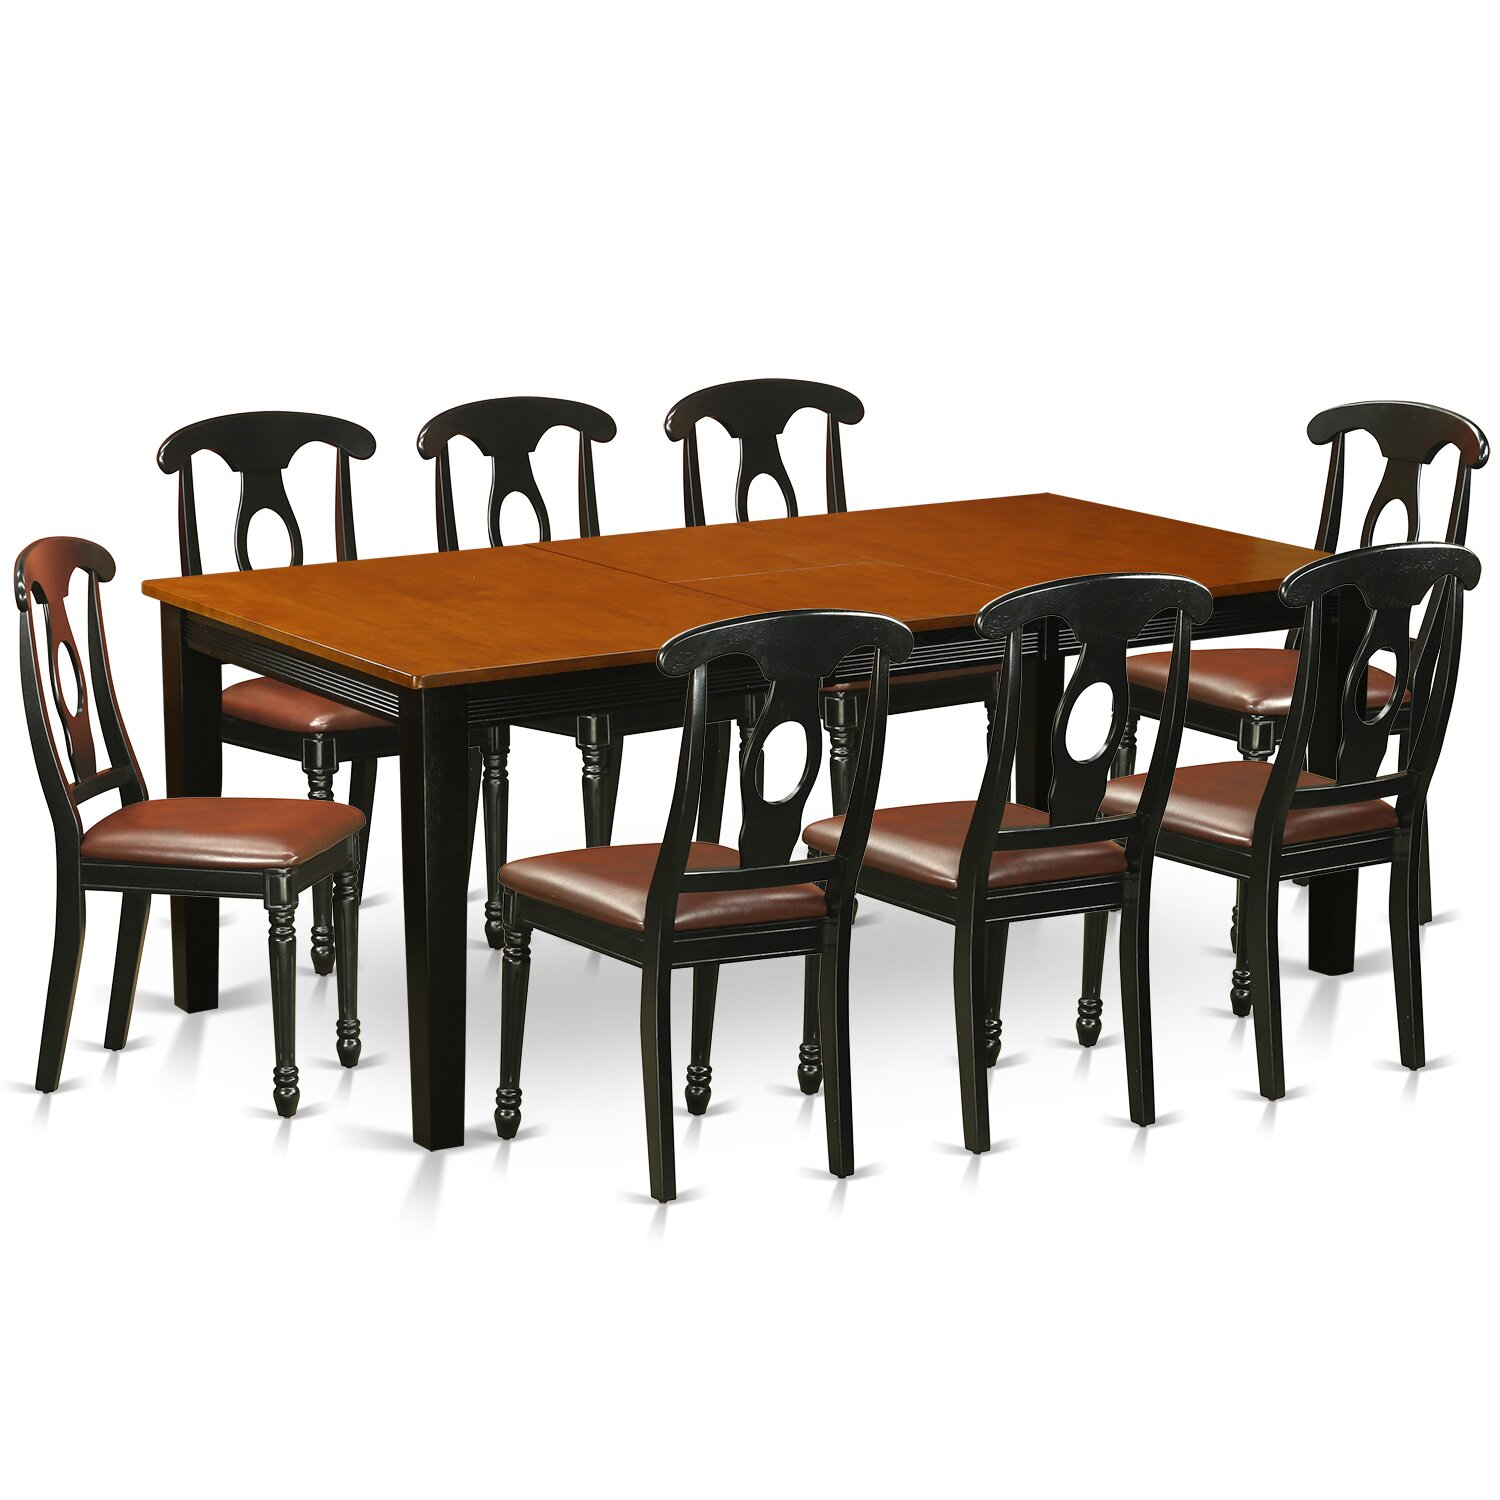 Pc coffee table set solid wood cherry side end tables living room